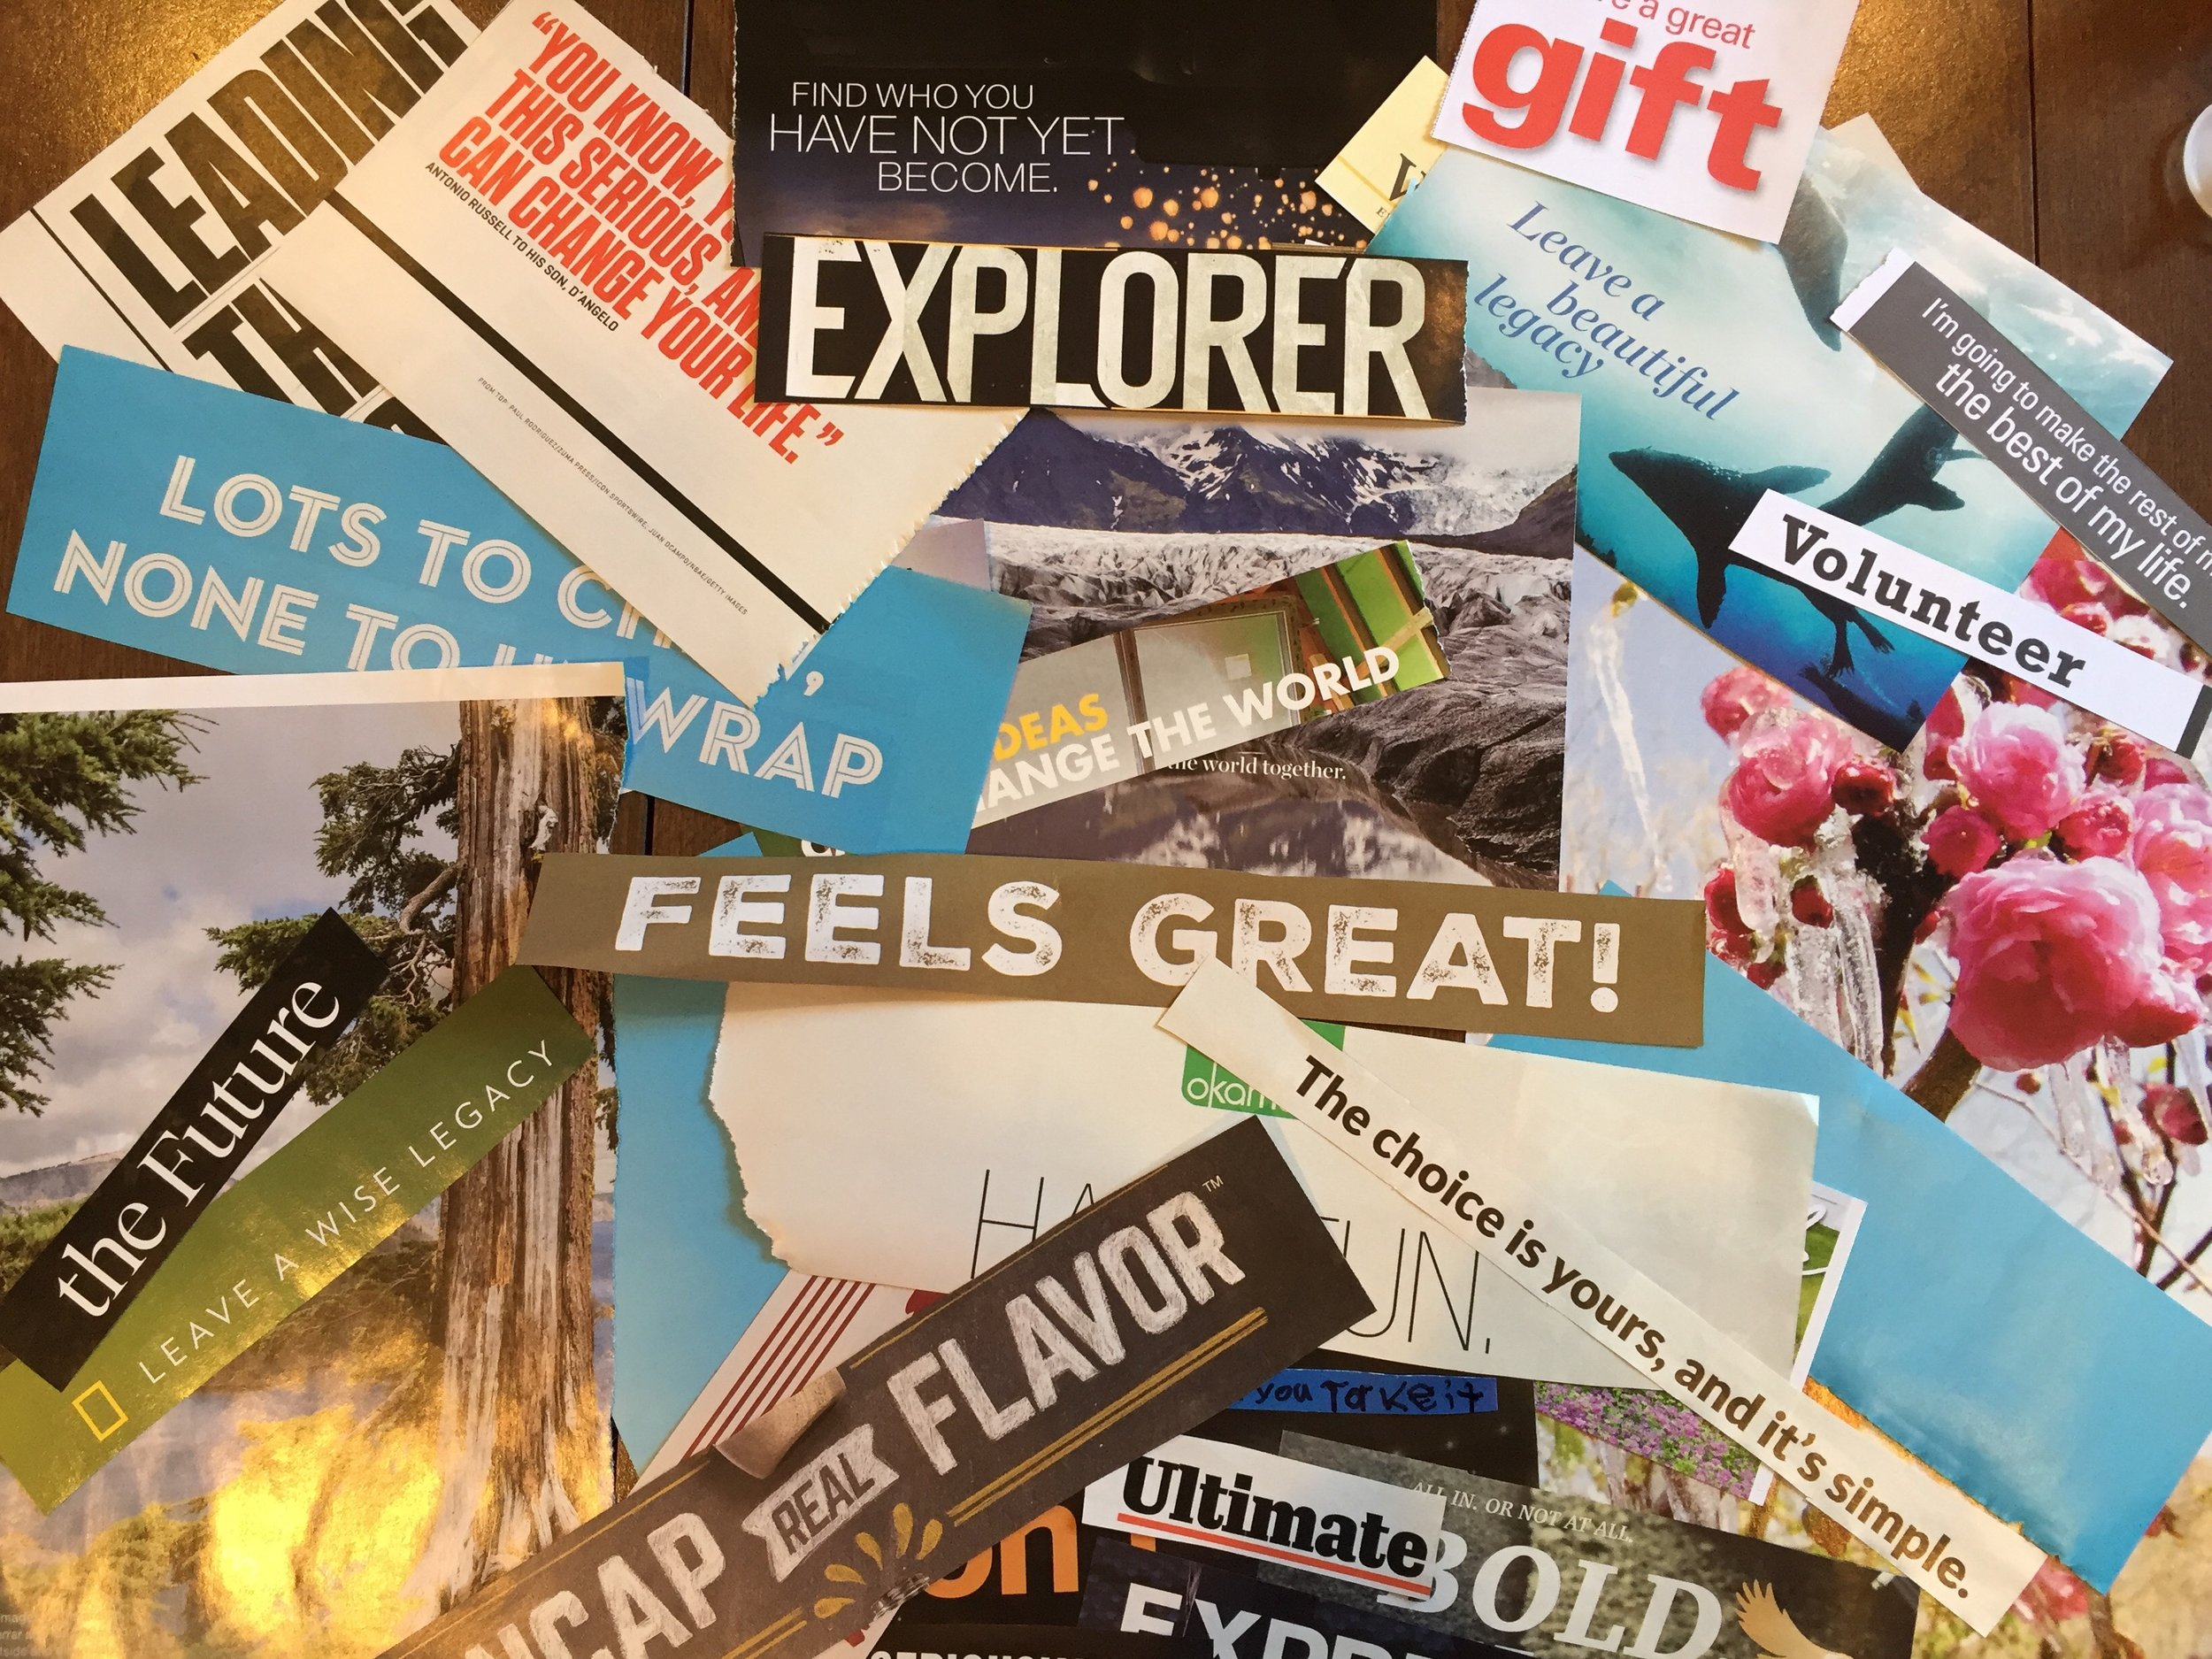 Magazine cut outs for my vision board(s).